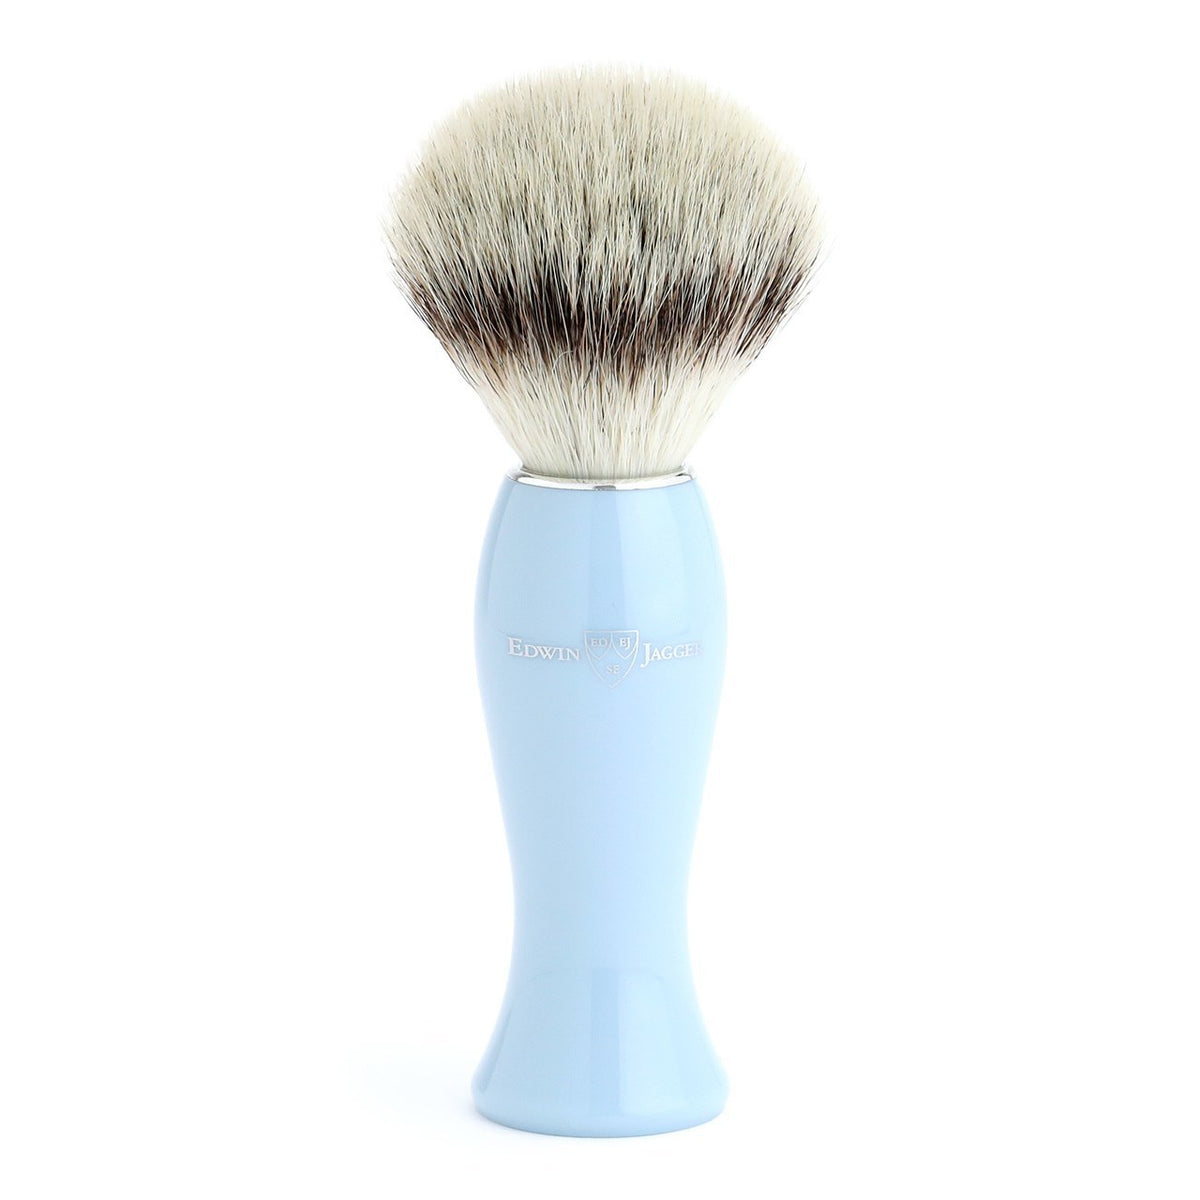 Edwin Jagger Lady's Shaving Brush - Blue